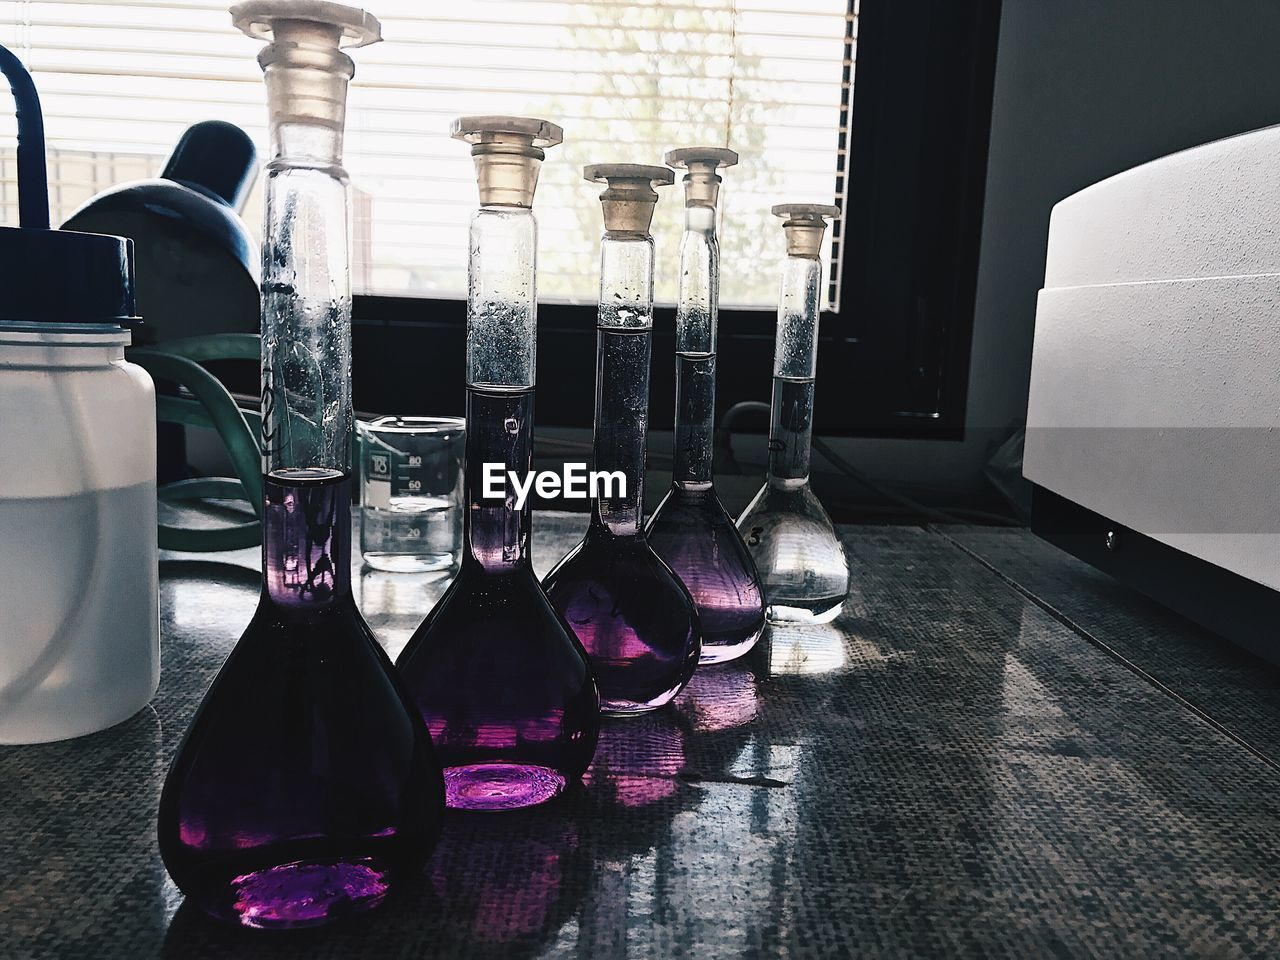 CLOSE-UP OF BOTTLES ON TABLE IN WINDOW